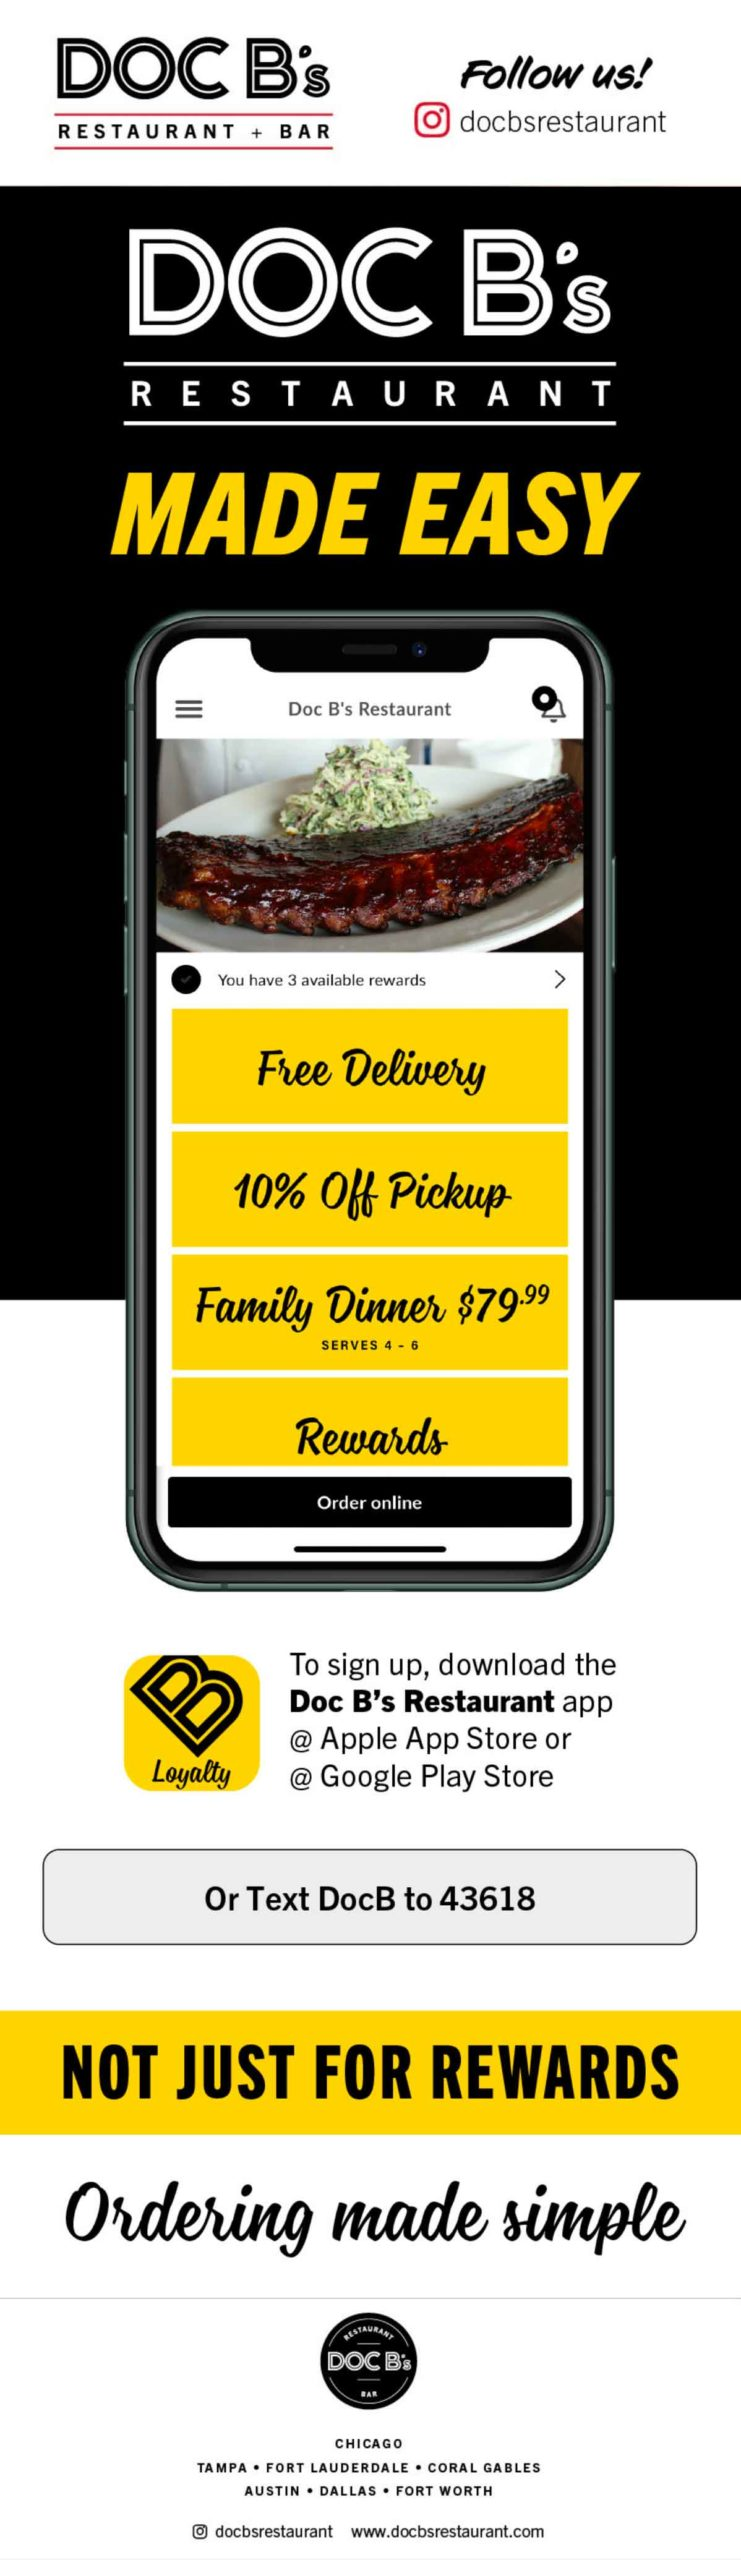 Doc B's: App Made Easy Email